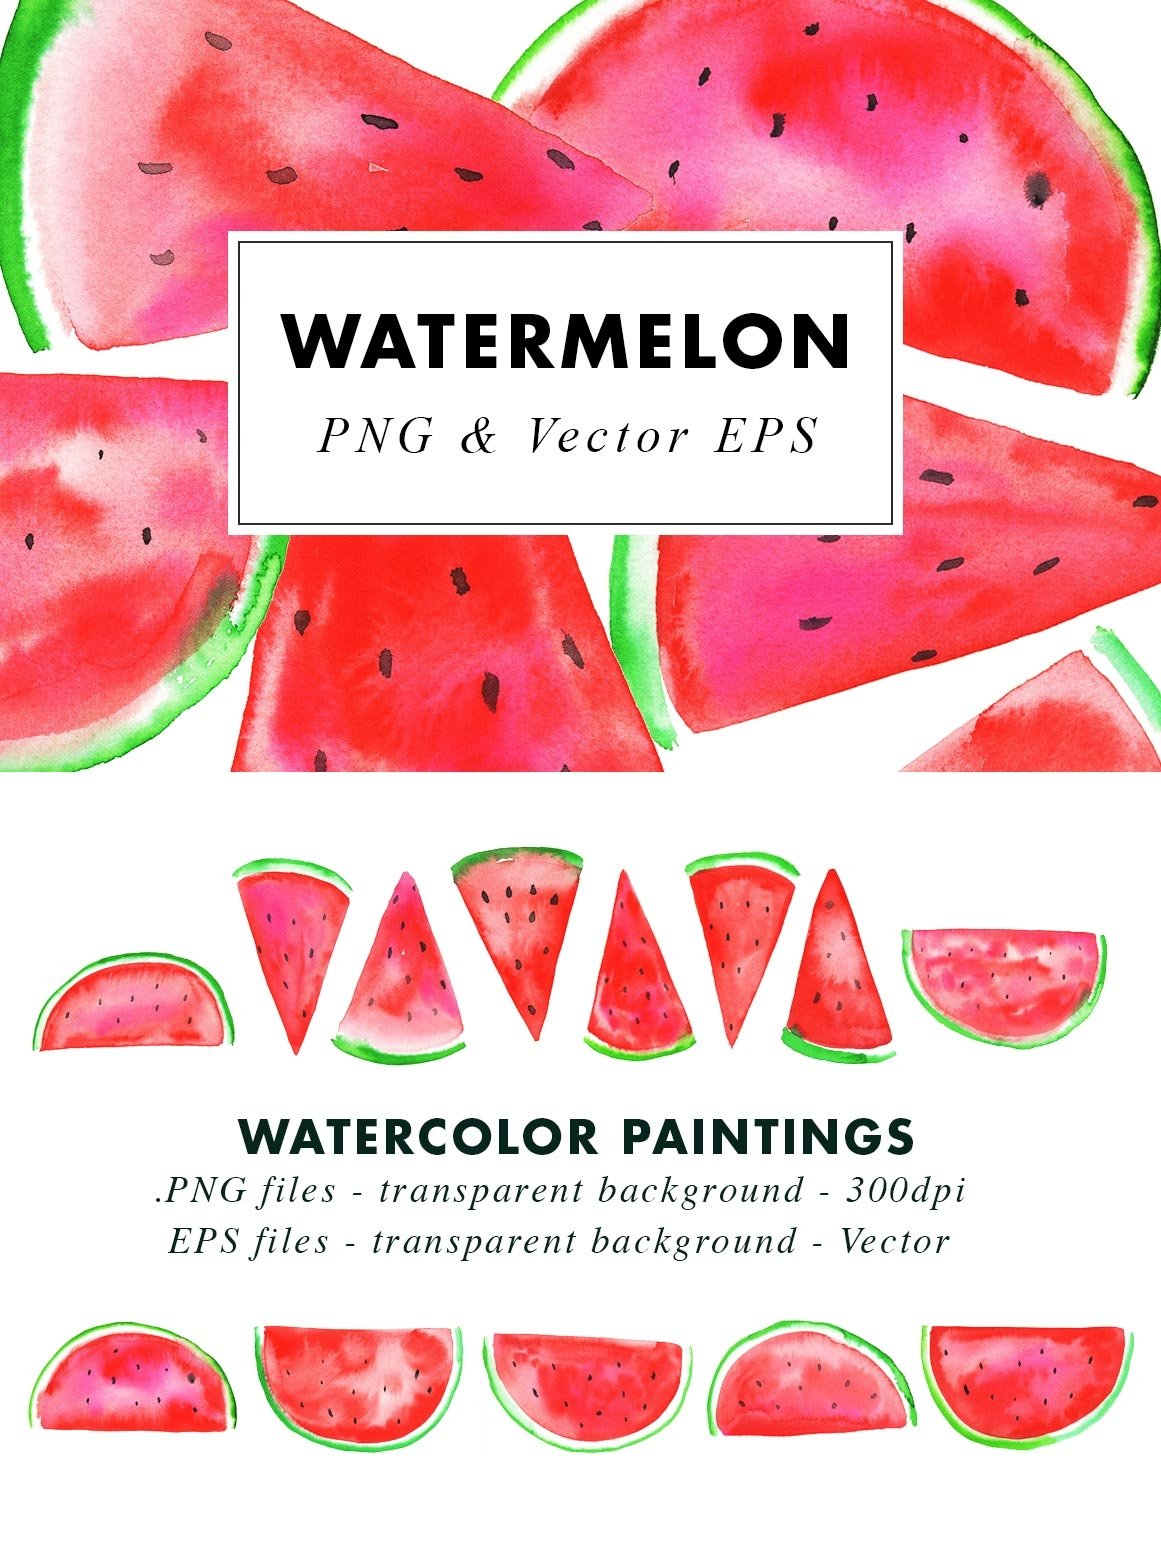 Watercolor Watermelon Illustrations Clip Art in PNG & Vector example image 3